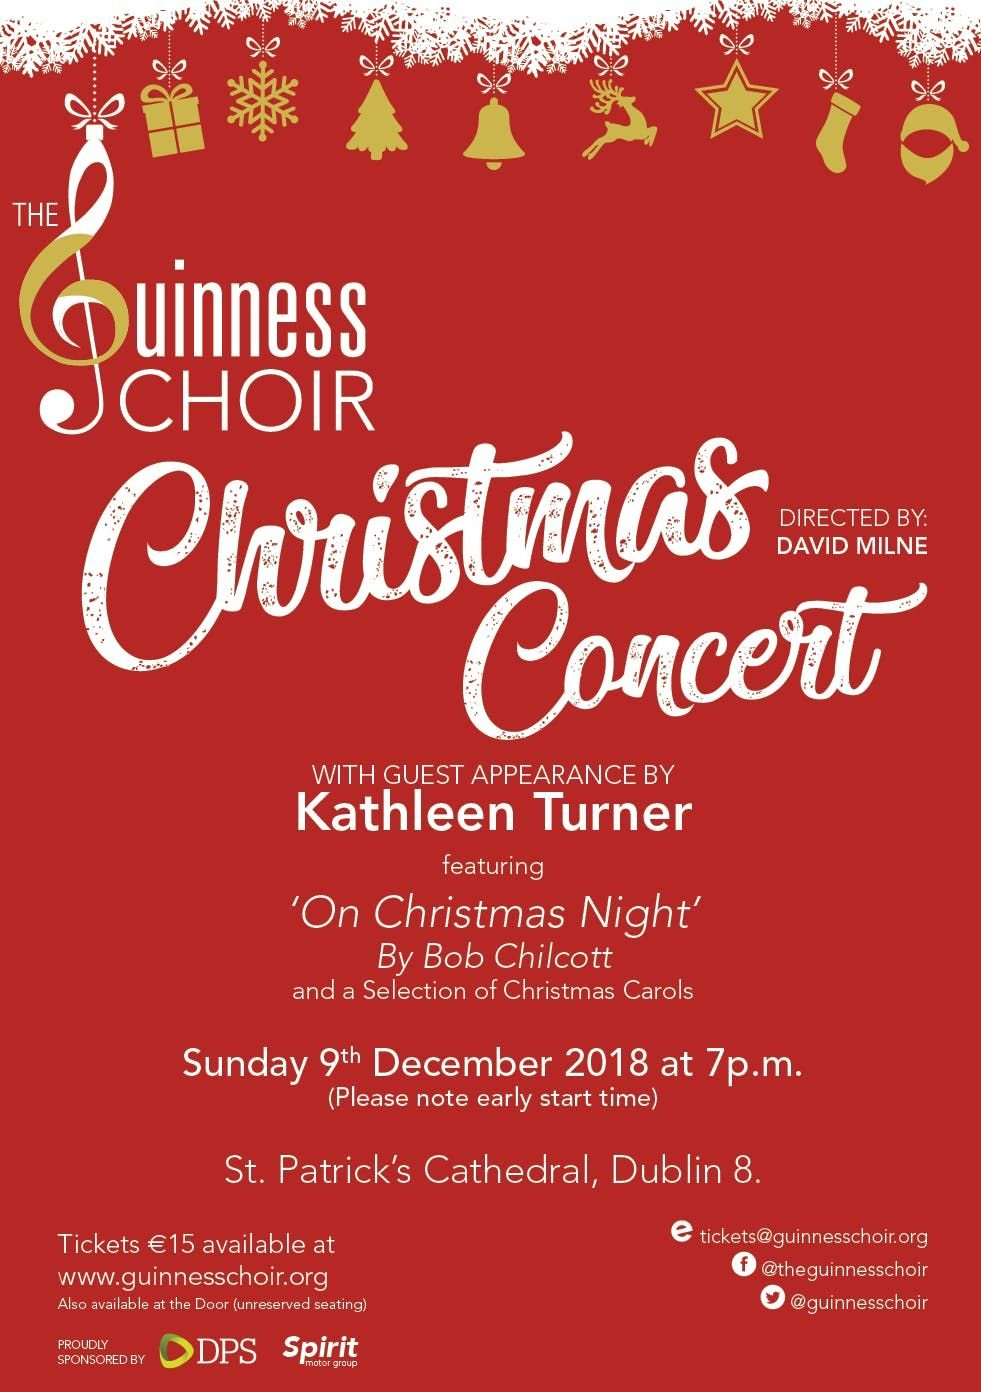 Guinness Choir Christmas Concert with Special Guest Kathleen Turner